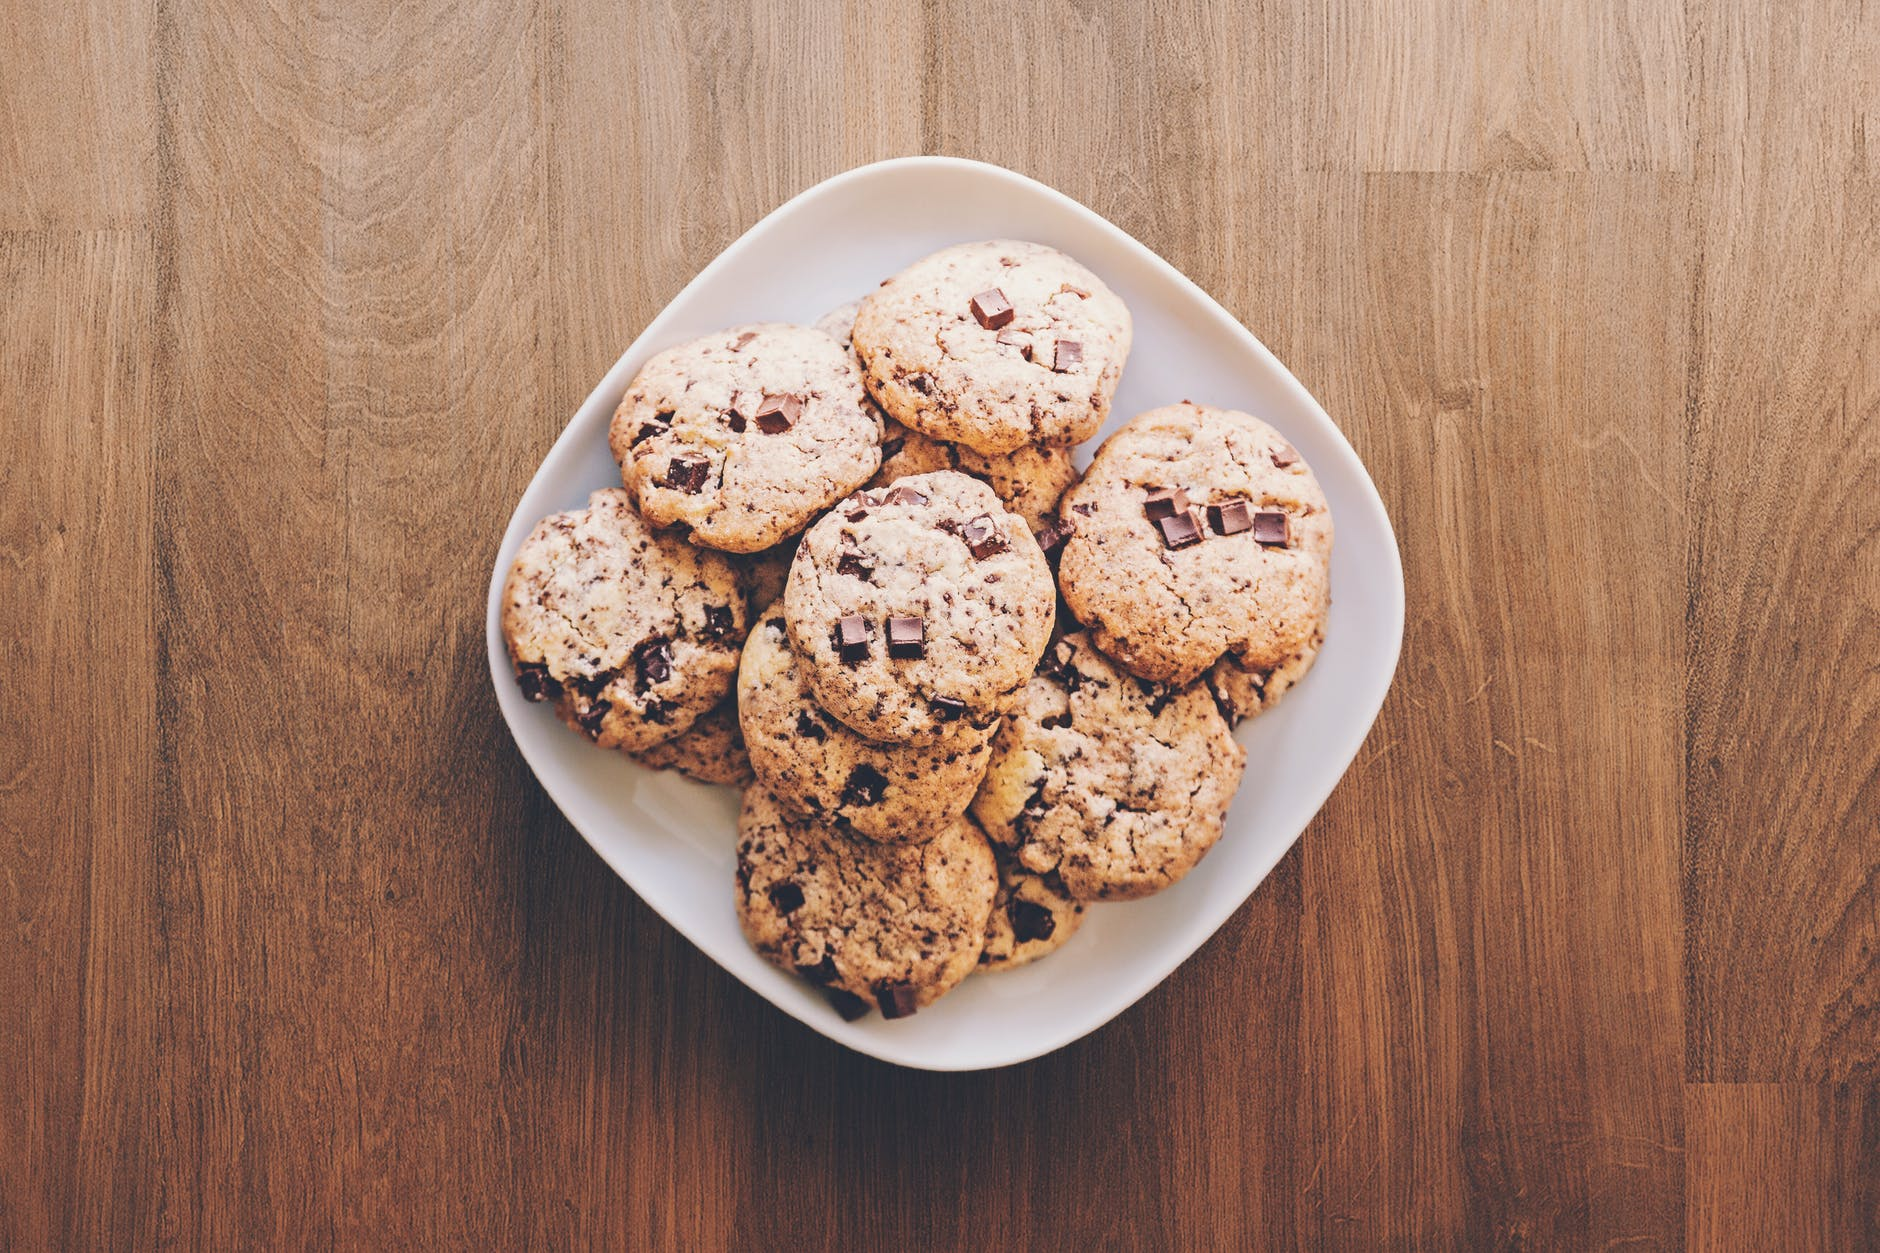 Progromatically get SessionId Cookie name used in an asp.net application